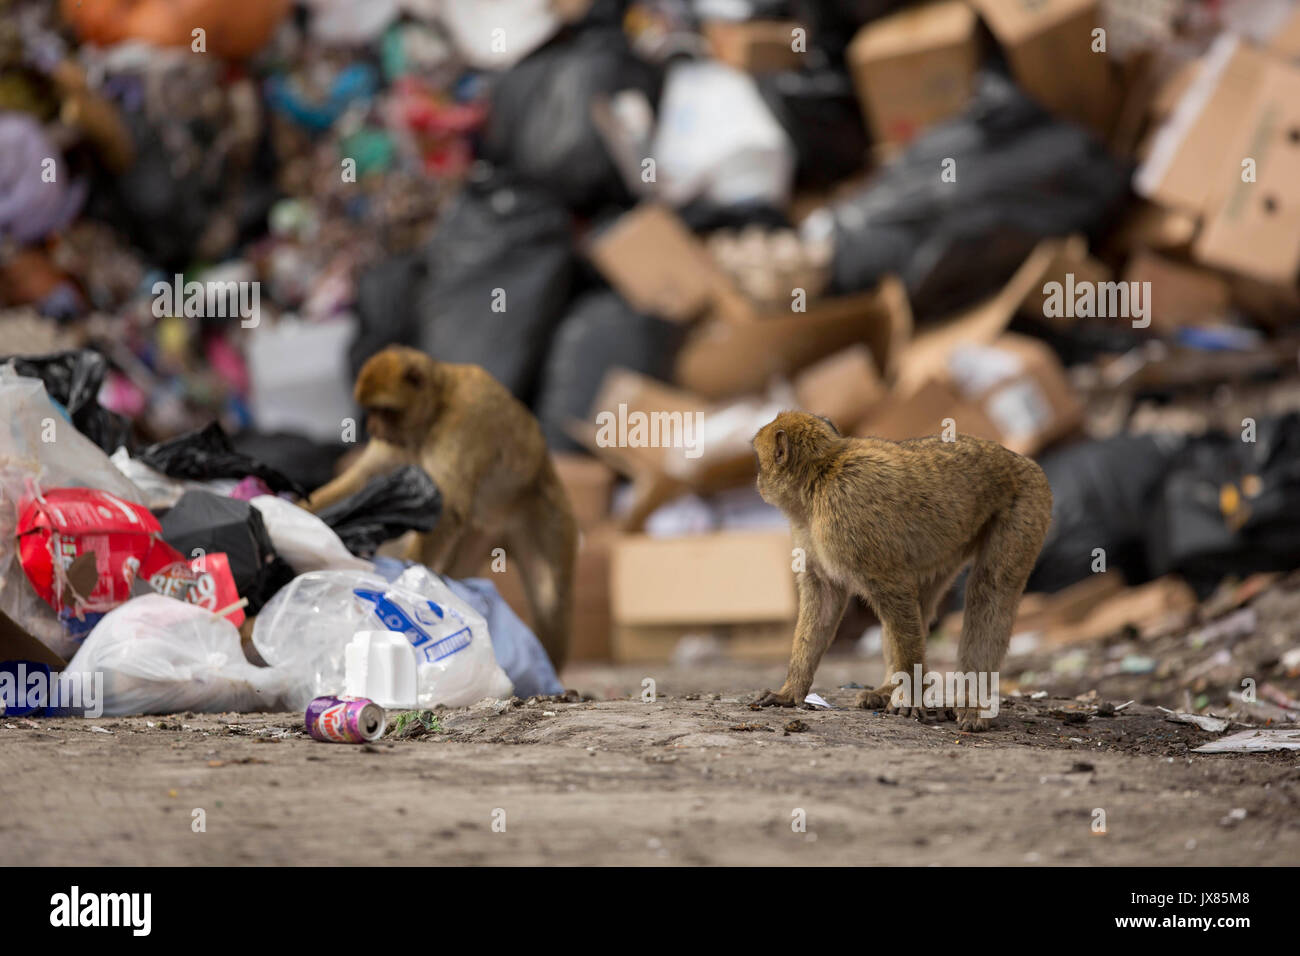 Barbary macaques scavenge for food in a landfill site in Gibraltar. - Stock Image